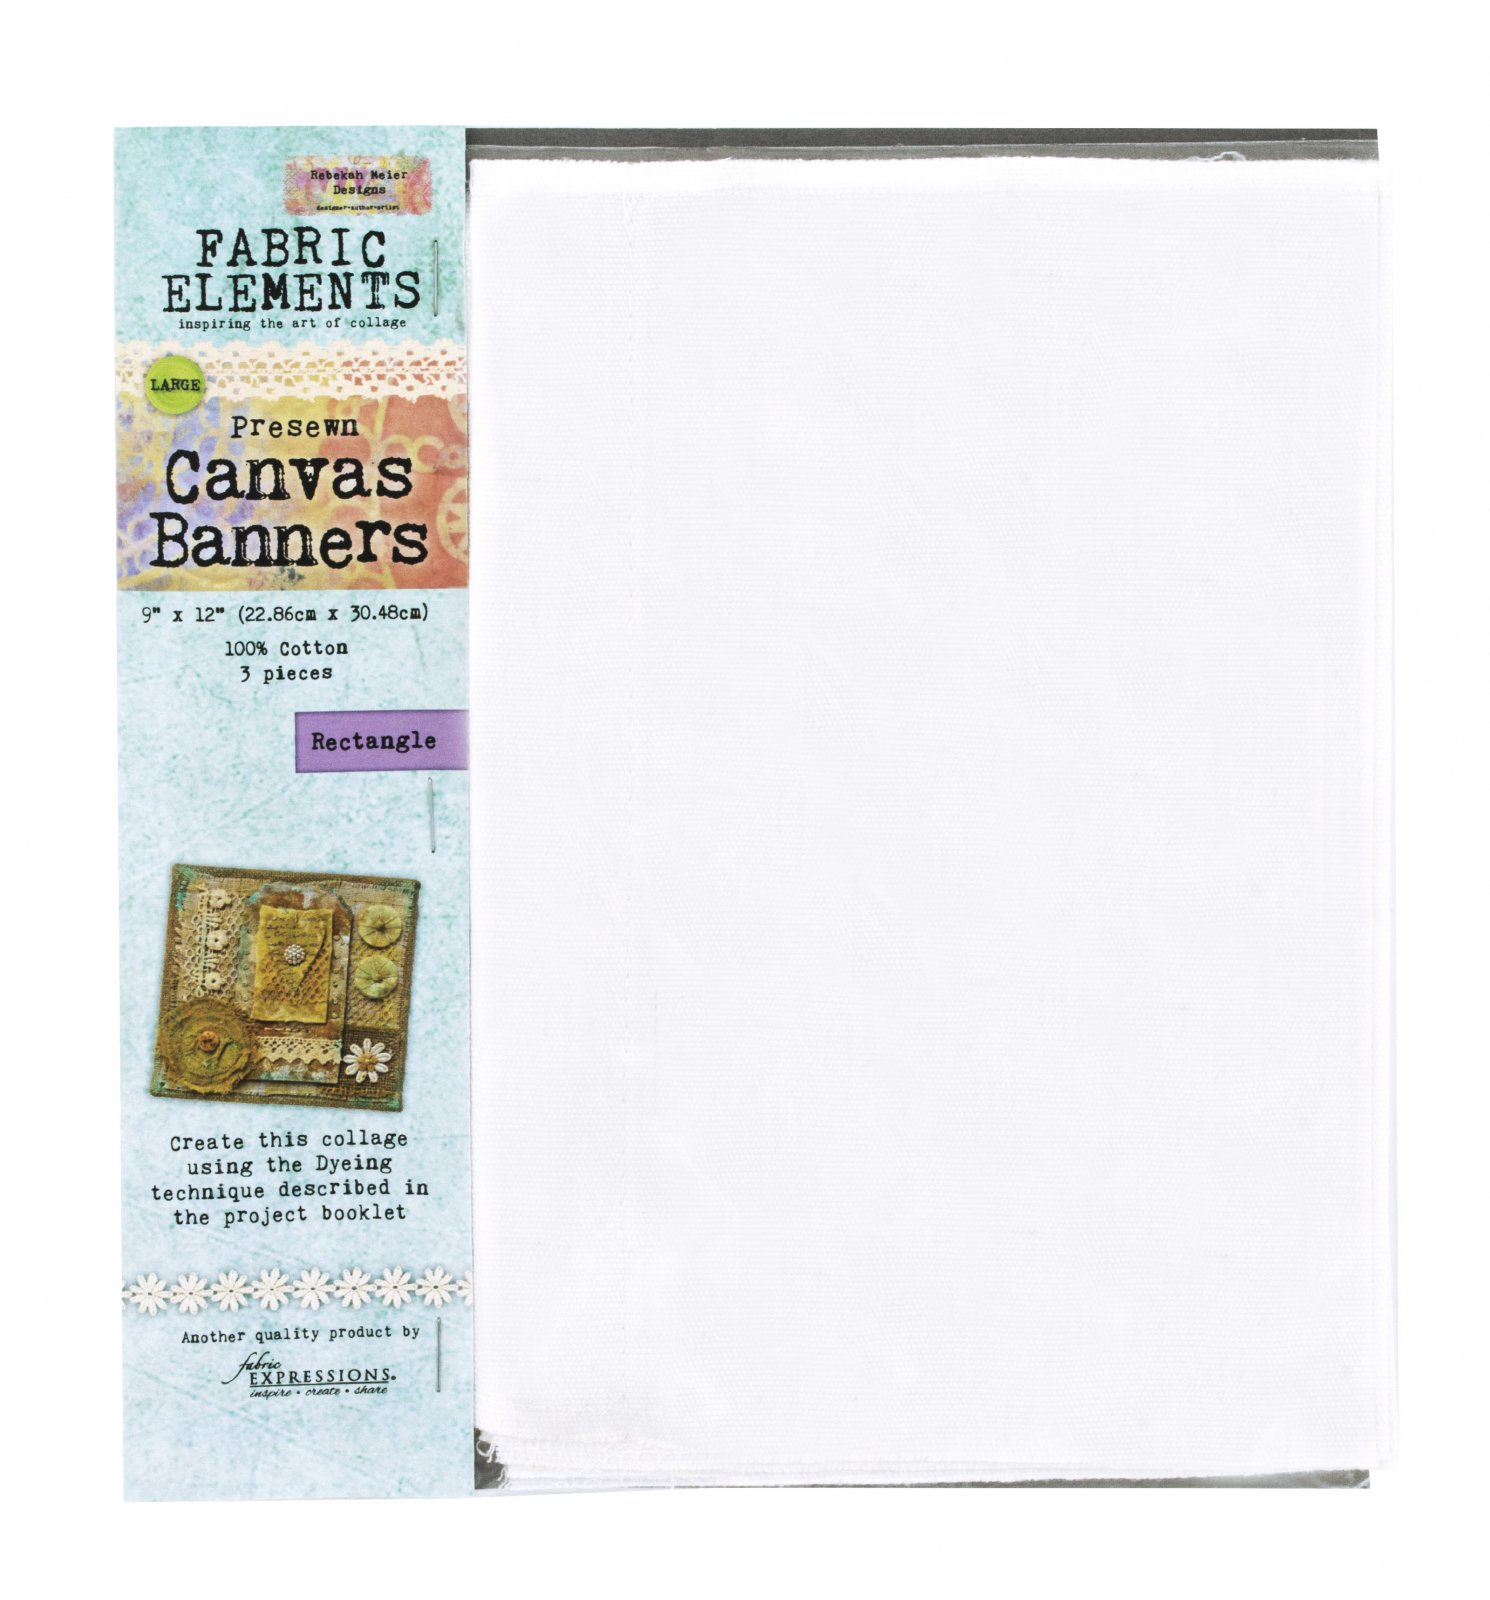 Fabric Elements Canvas Banners